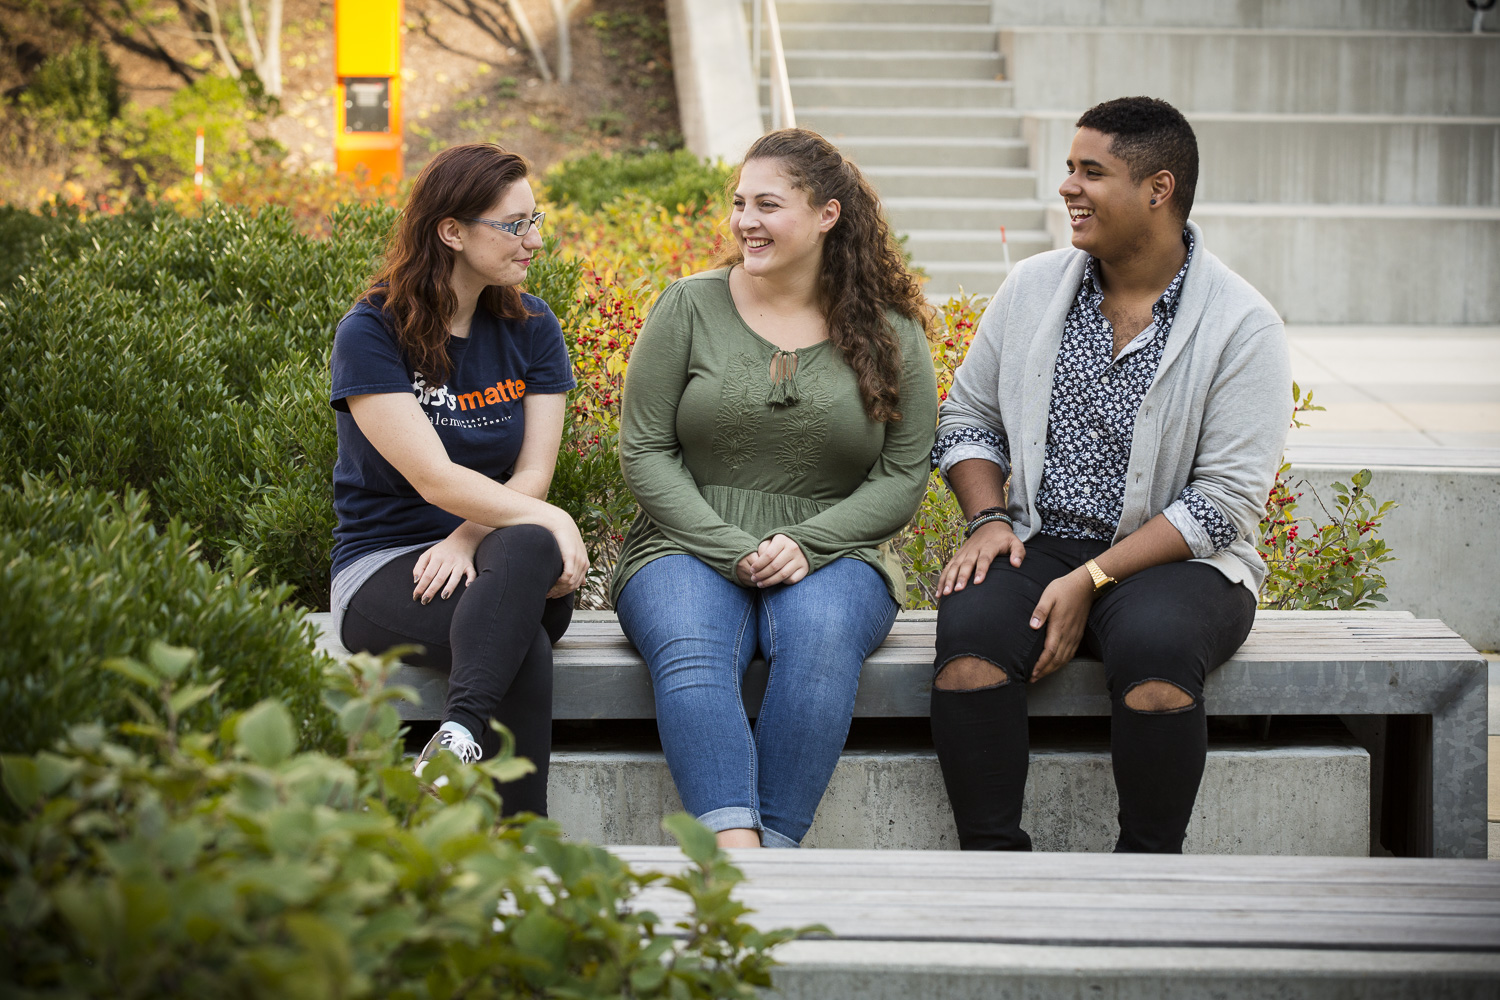 Accepted Students Day 2019 at Salem State University, Sunday, March 31, 2019